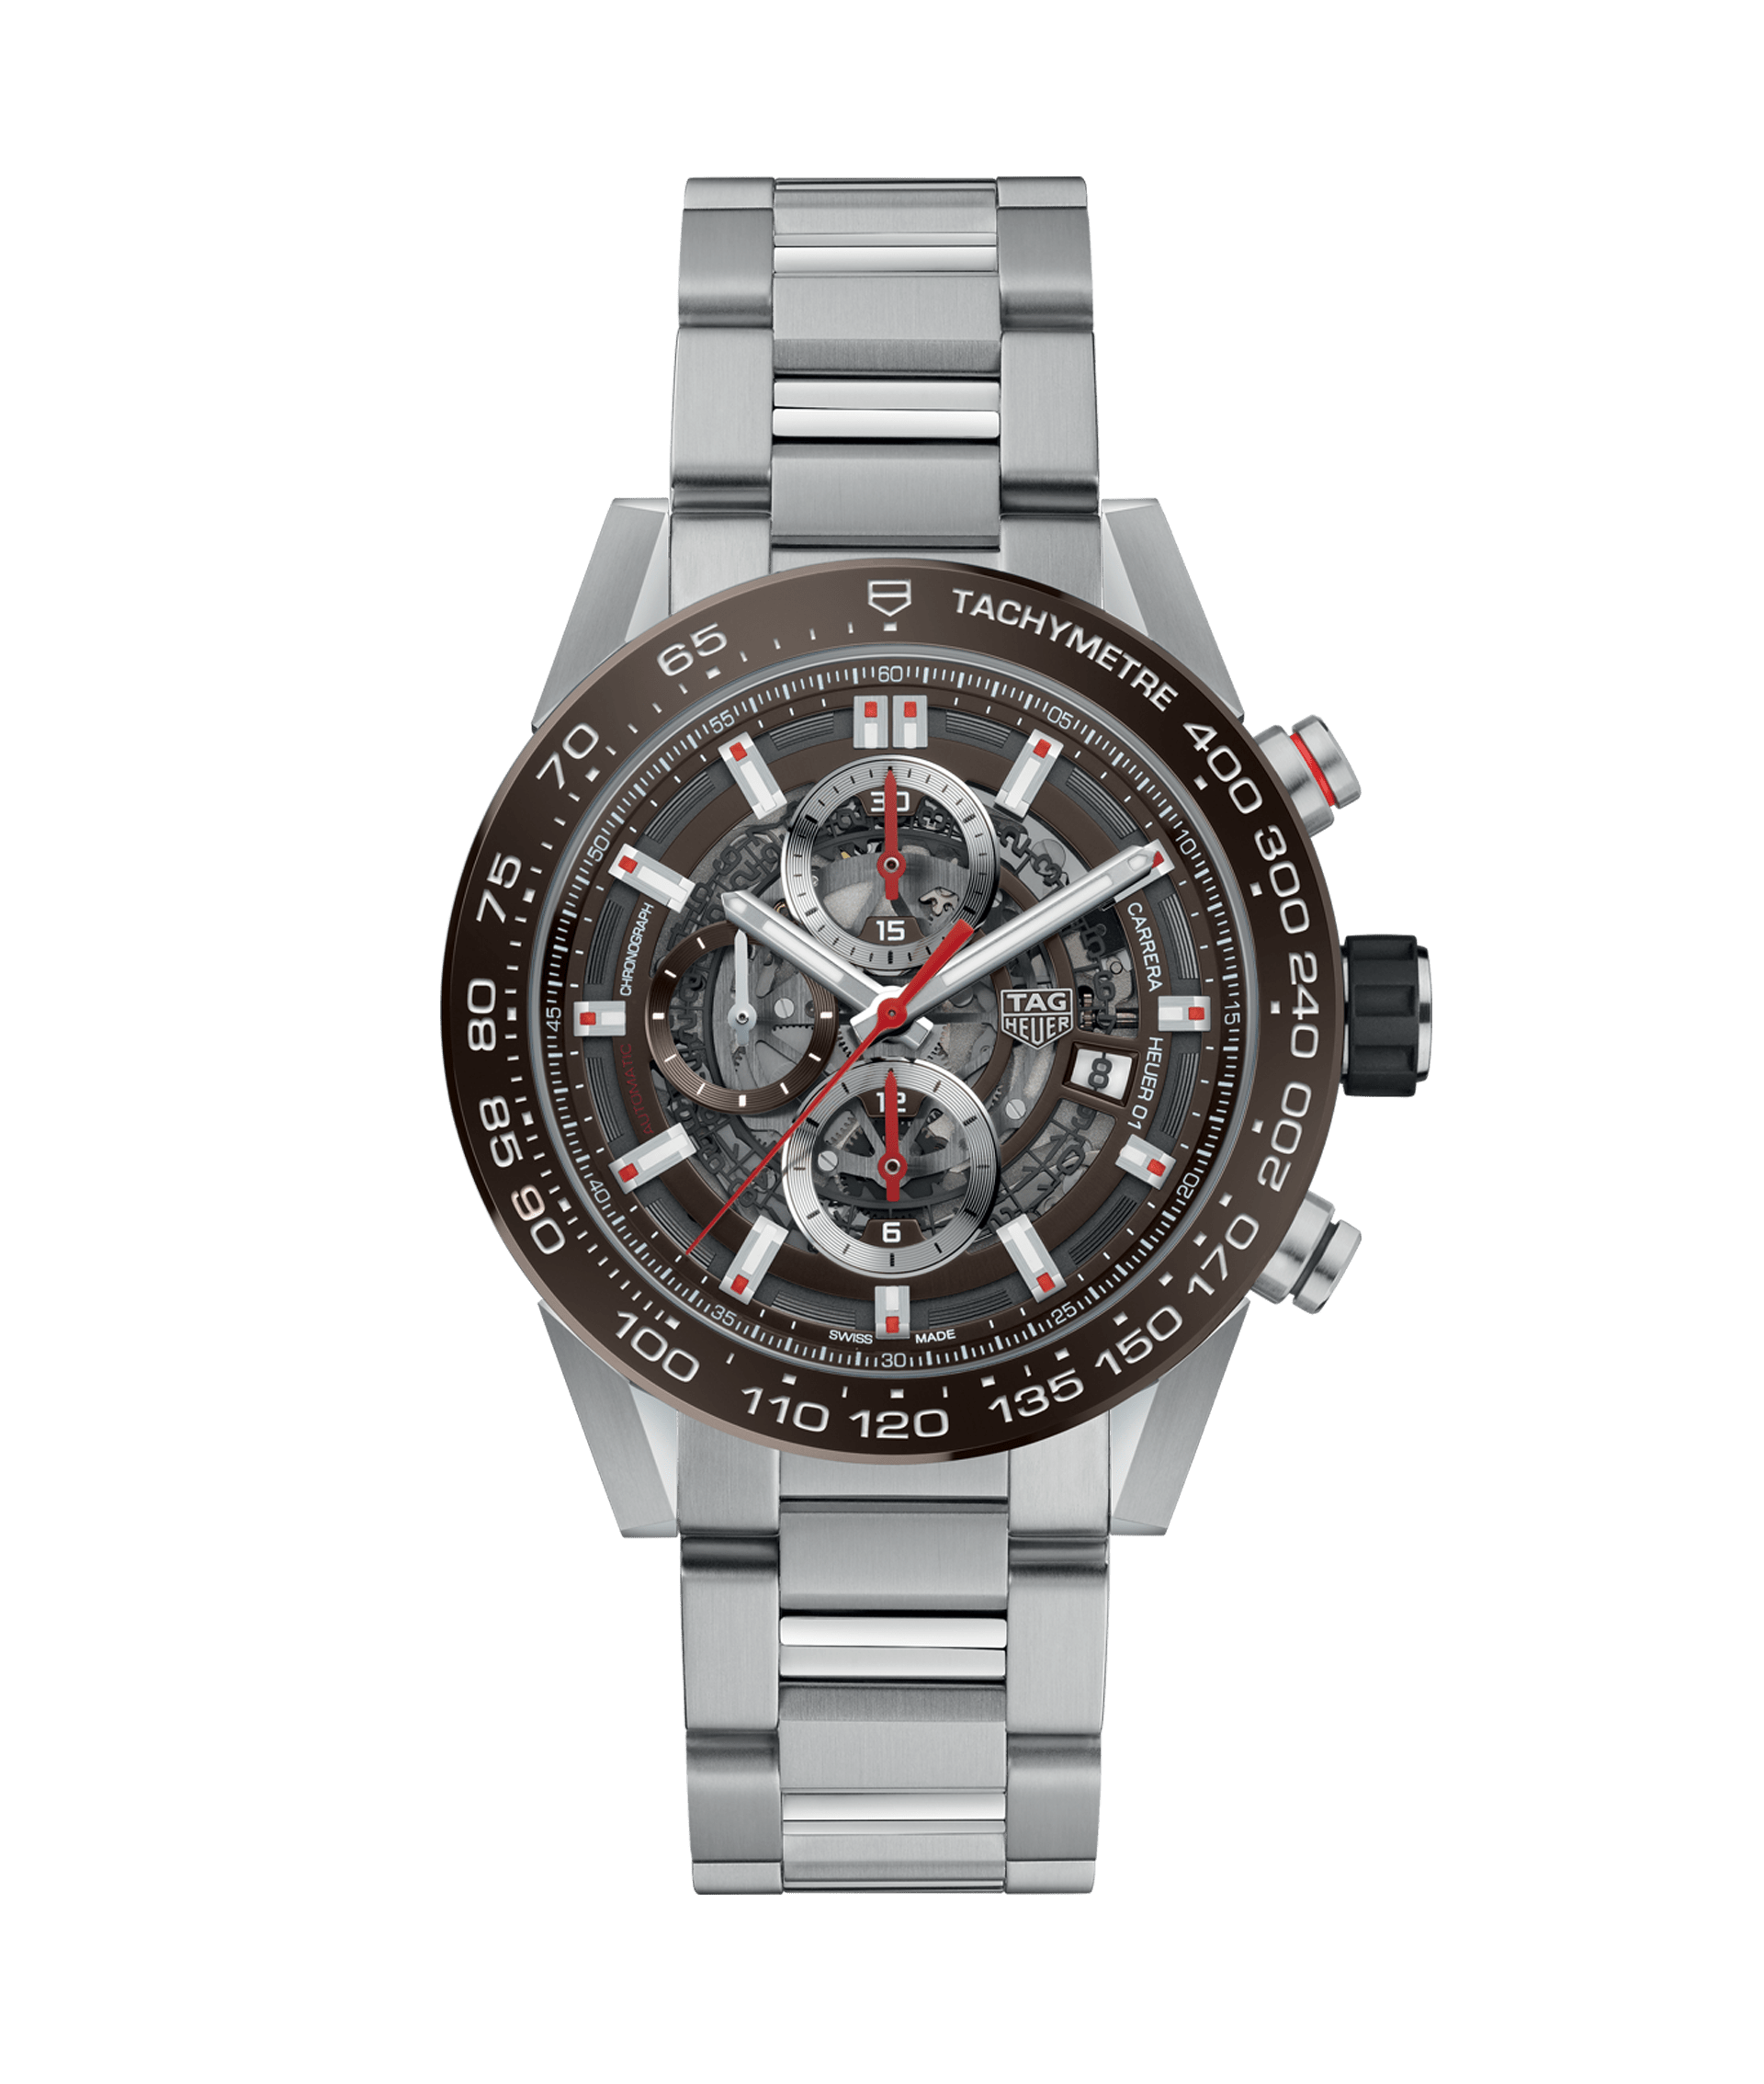 TAG HEUER CARRERA CALIBRE HEUER 01 AUTOMATIC CHRONOGRAPH 100m - 43mm - CAR201U.BA0766